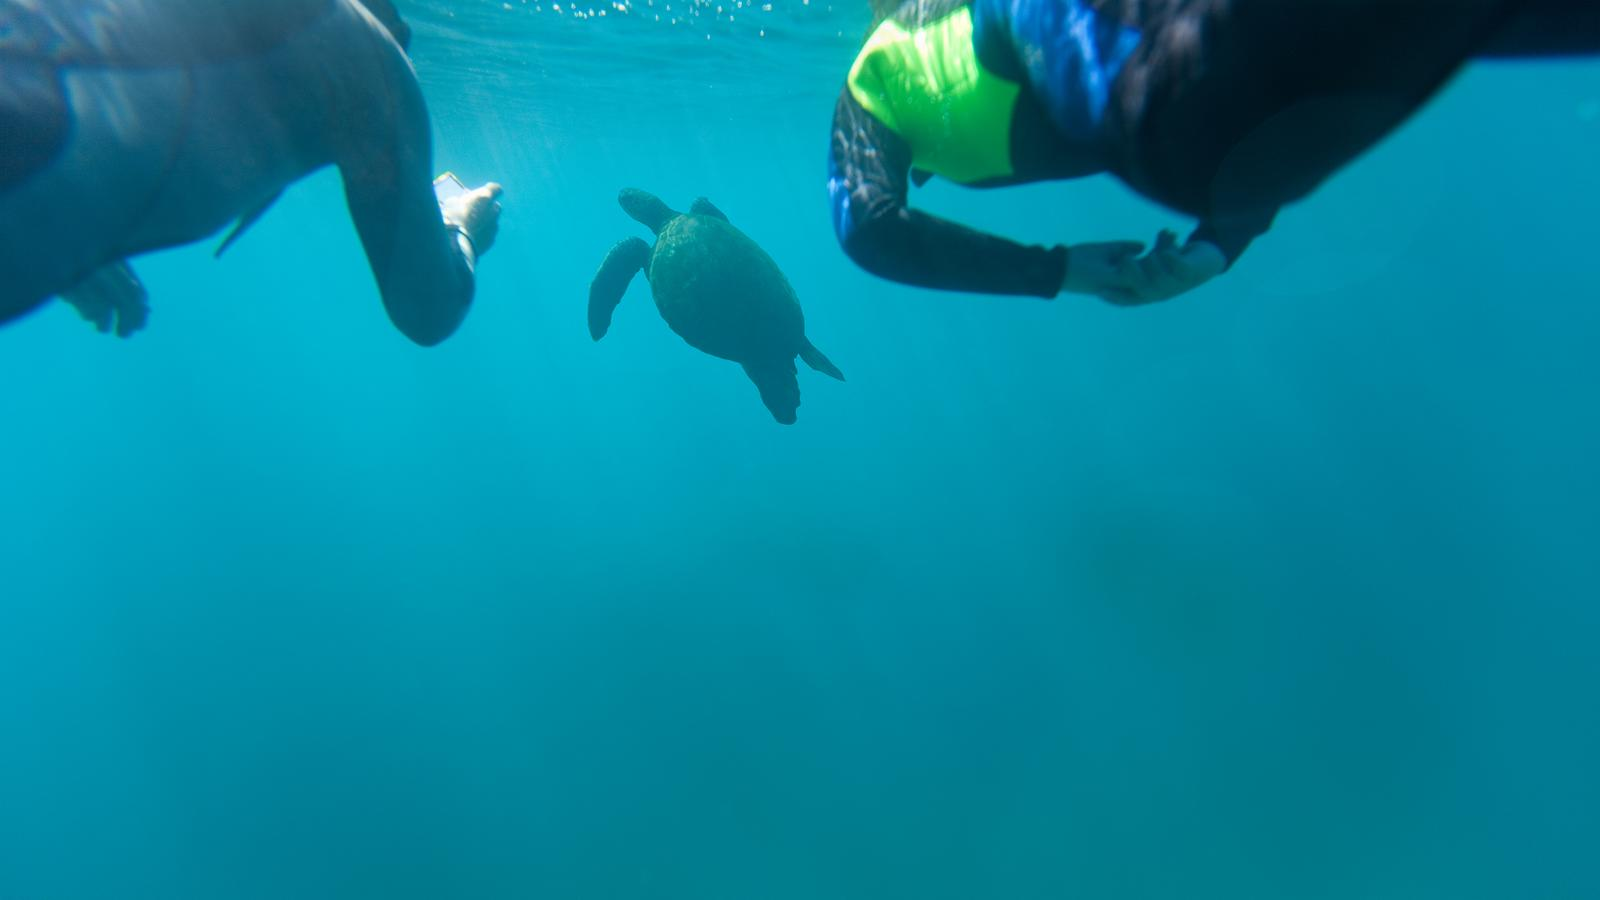 Snorkellers following a tortoise underwater in the Galapagos